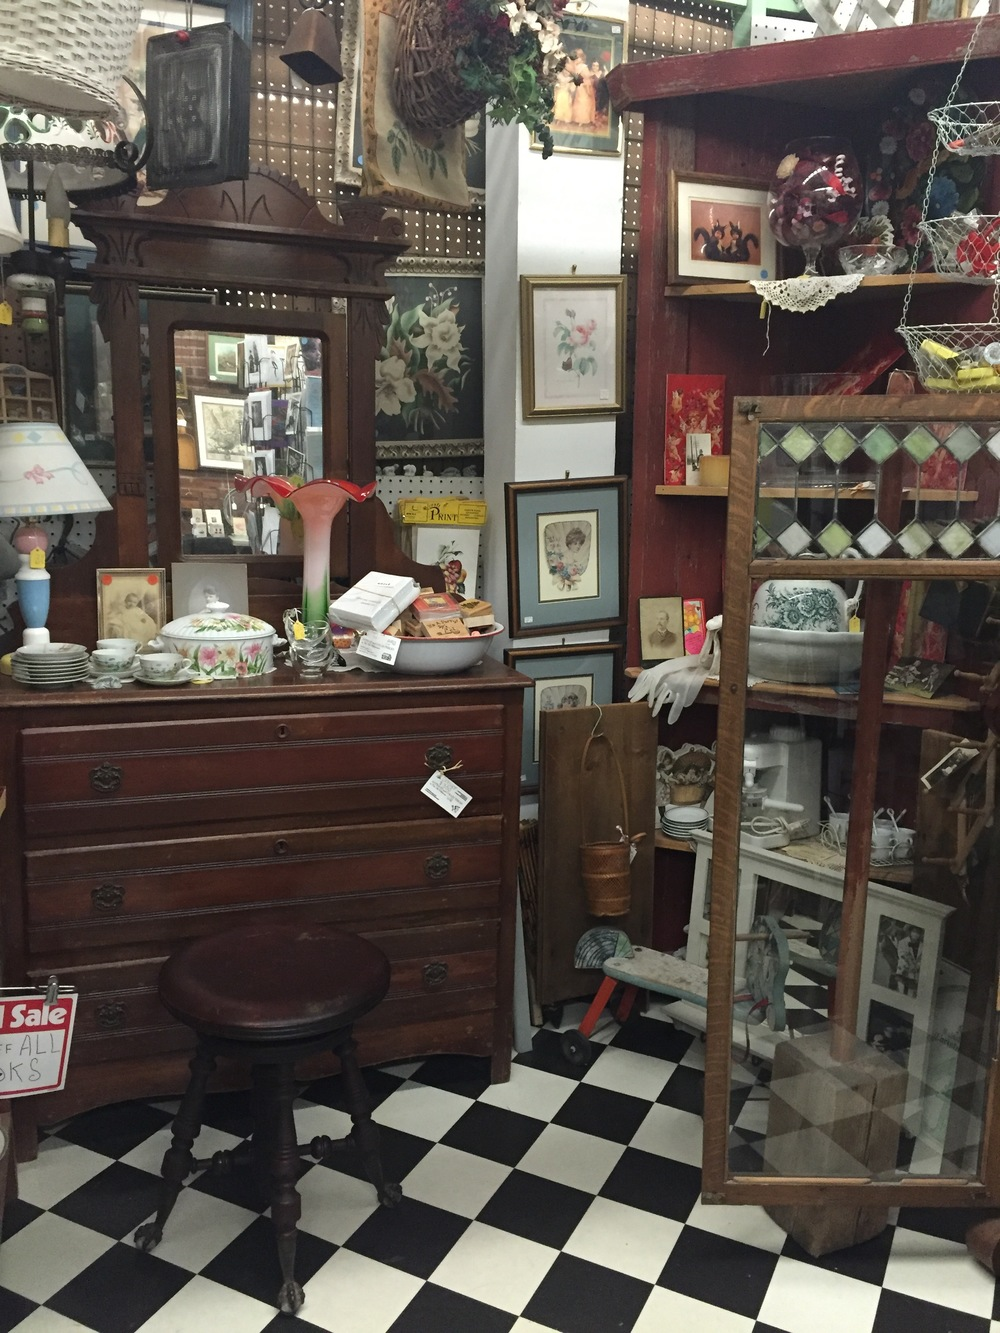 Antiques and Collectibles in the Old Milkhouse